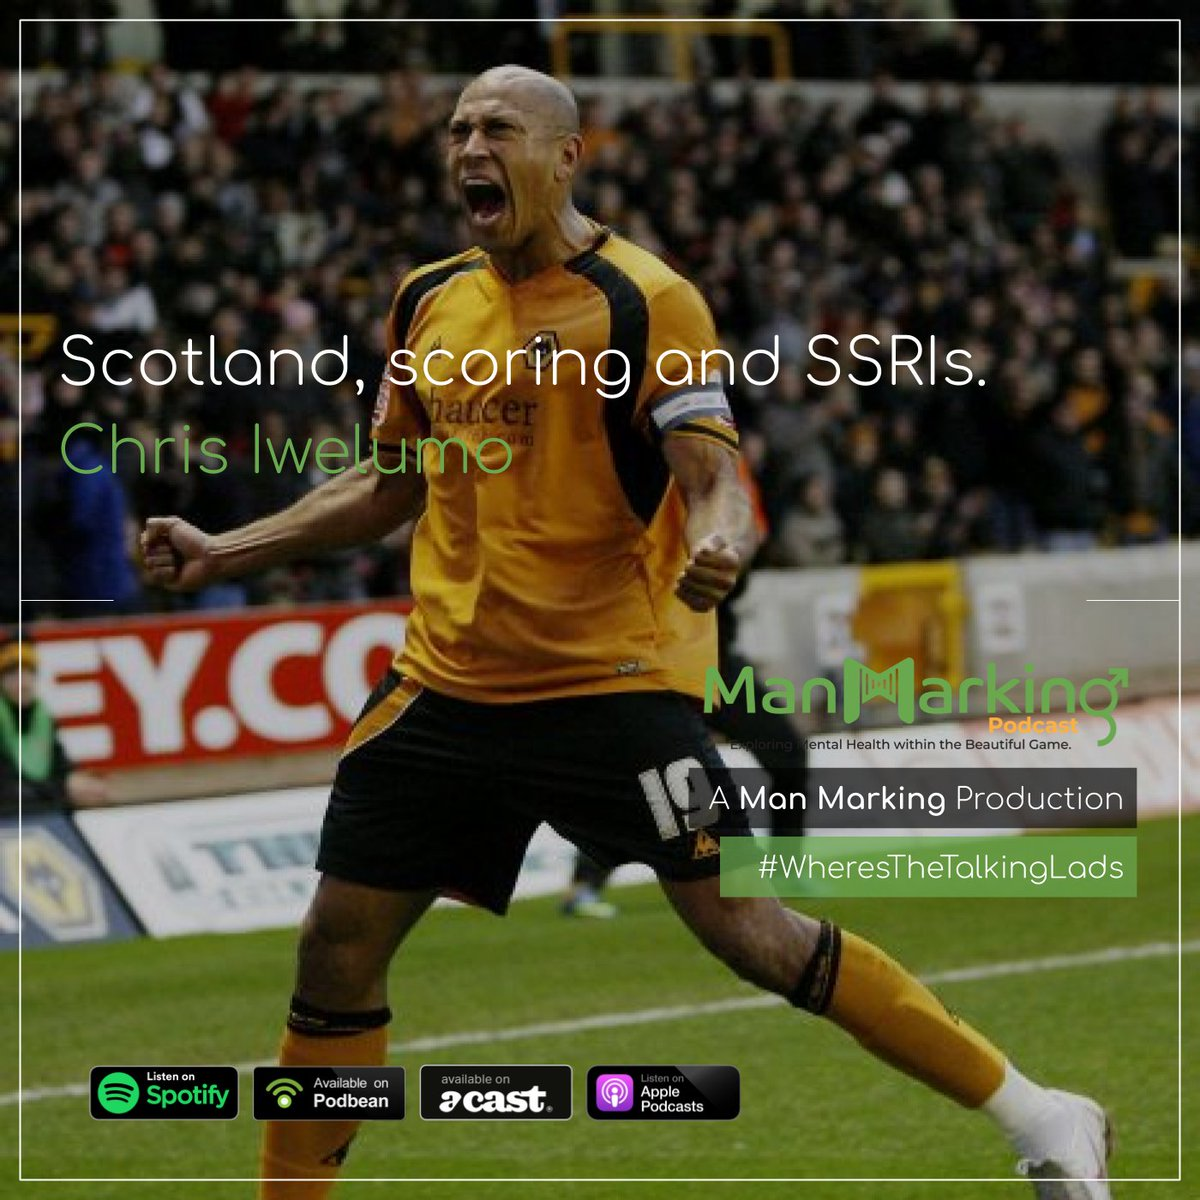 New Episode!! https://podfollow.com/1506661828  We spoke to @chris_iwelumo about his childhood in Glasgow, his brilliant colourful career, as well as a very honest conversation about the time he spent on antidepressants whilst playing for Watford.   #WheresTheTalkingLadspic.twitter.com/orP2gTZ58j